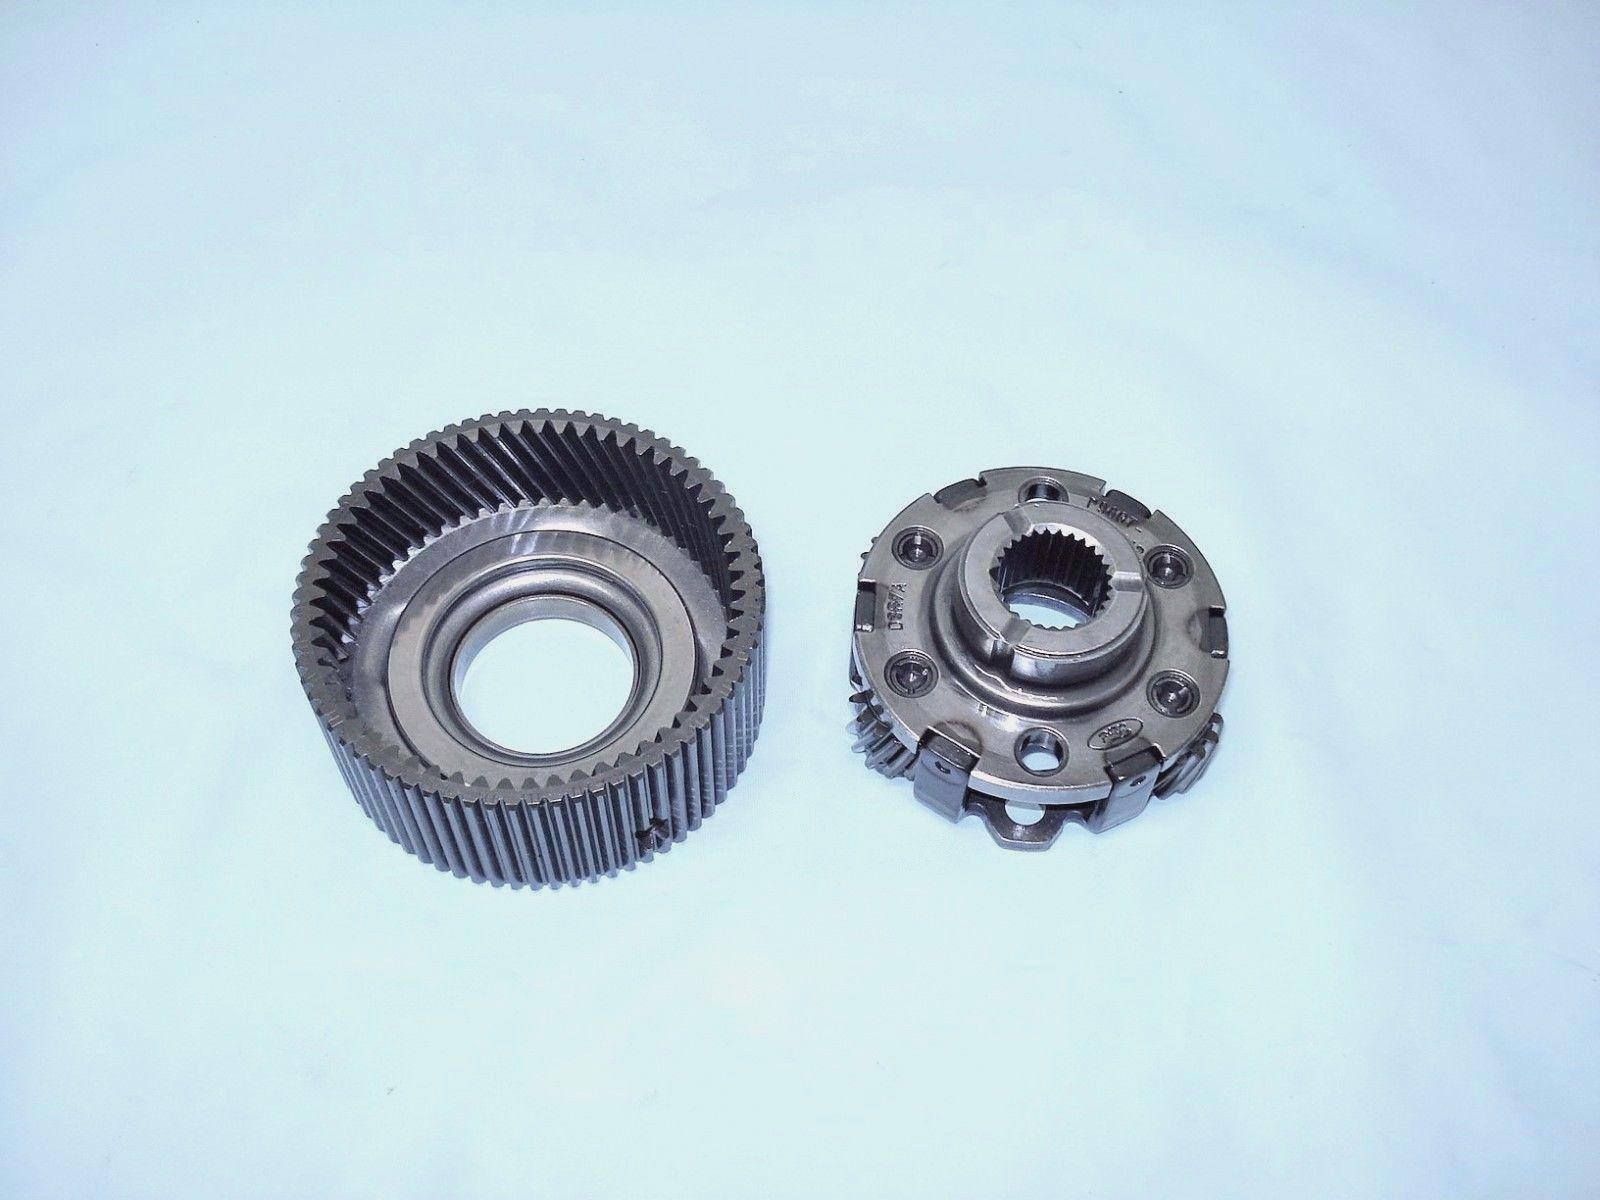 5R55E Ford 4 Pinion Front Planet & Ring Gear and 50 similar